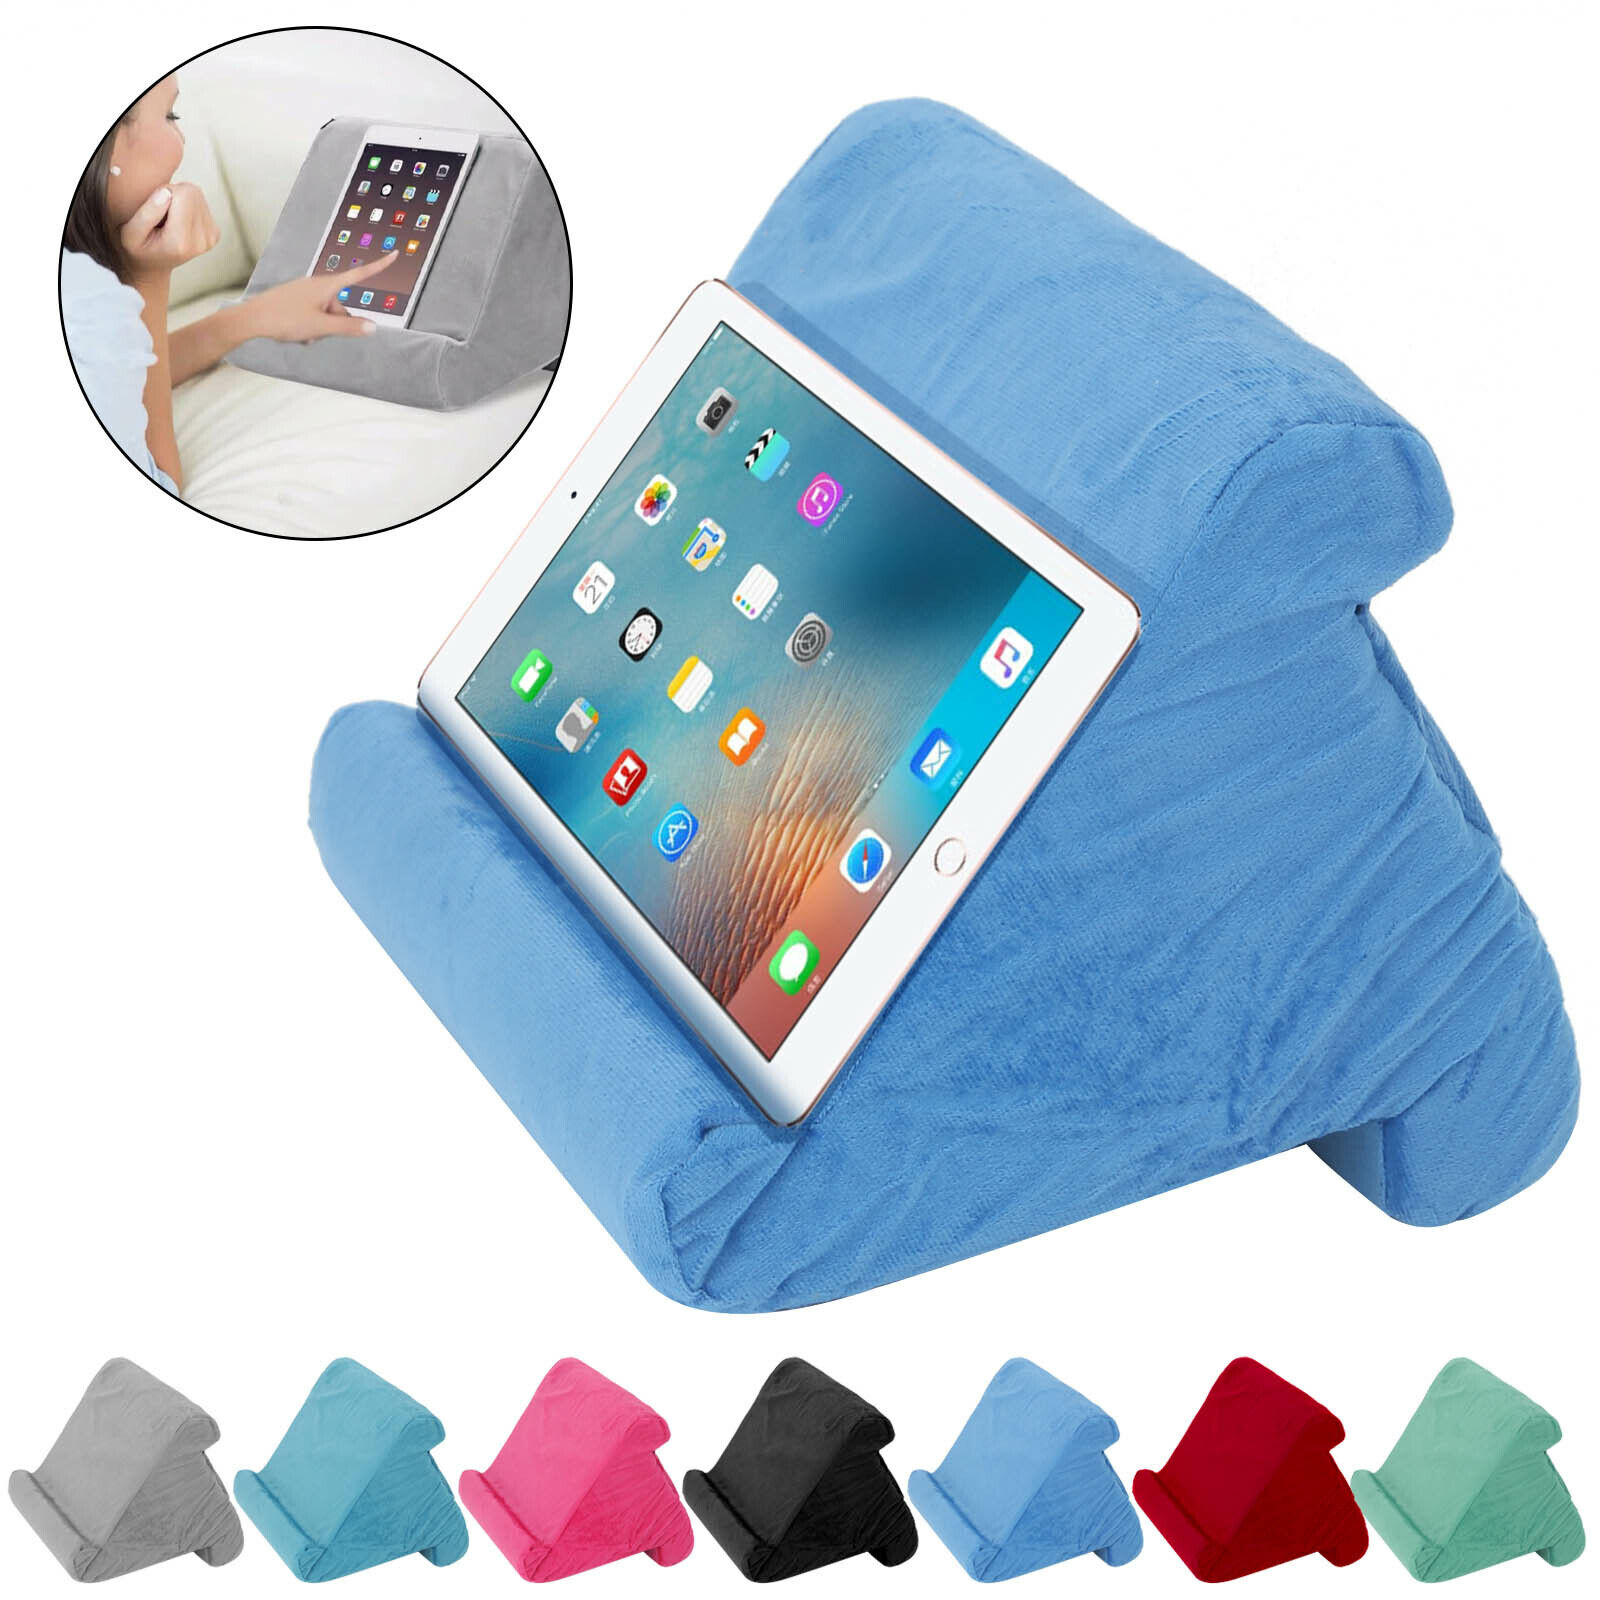 2021 Multi- Soft Pillow Lap Stand For IPad Tablet Cushion Phone Laptop Holder UK